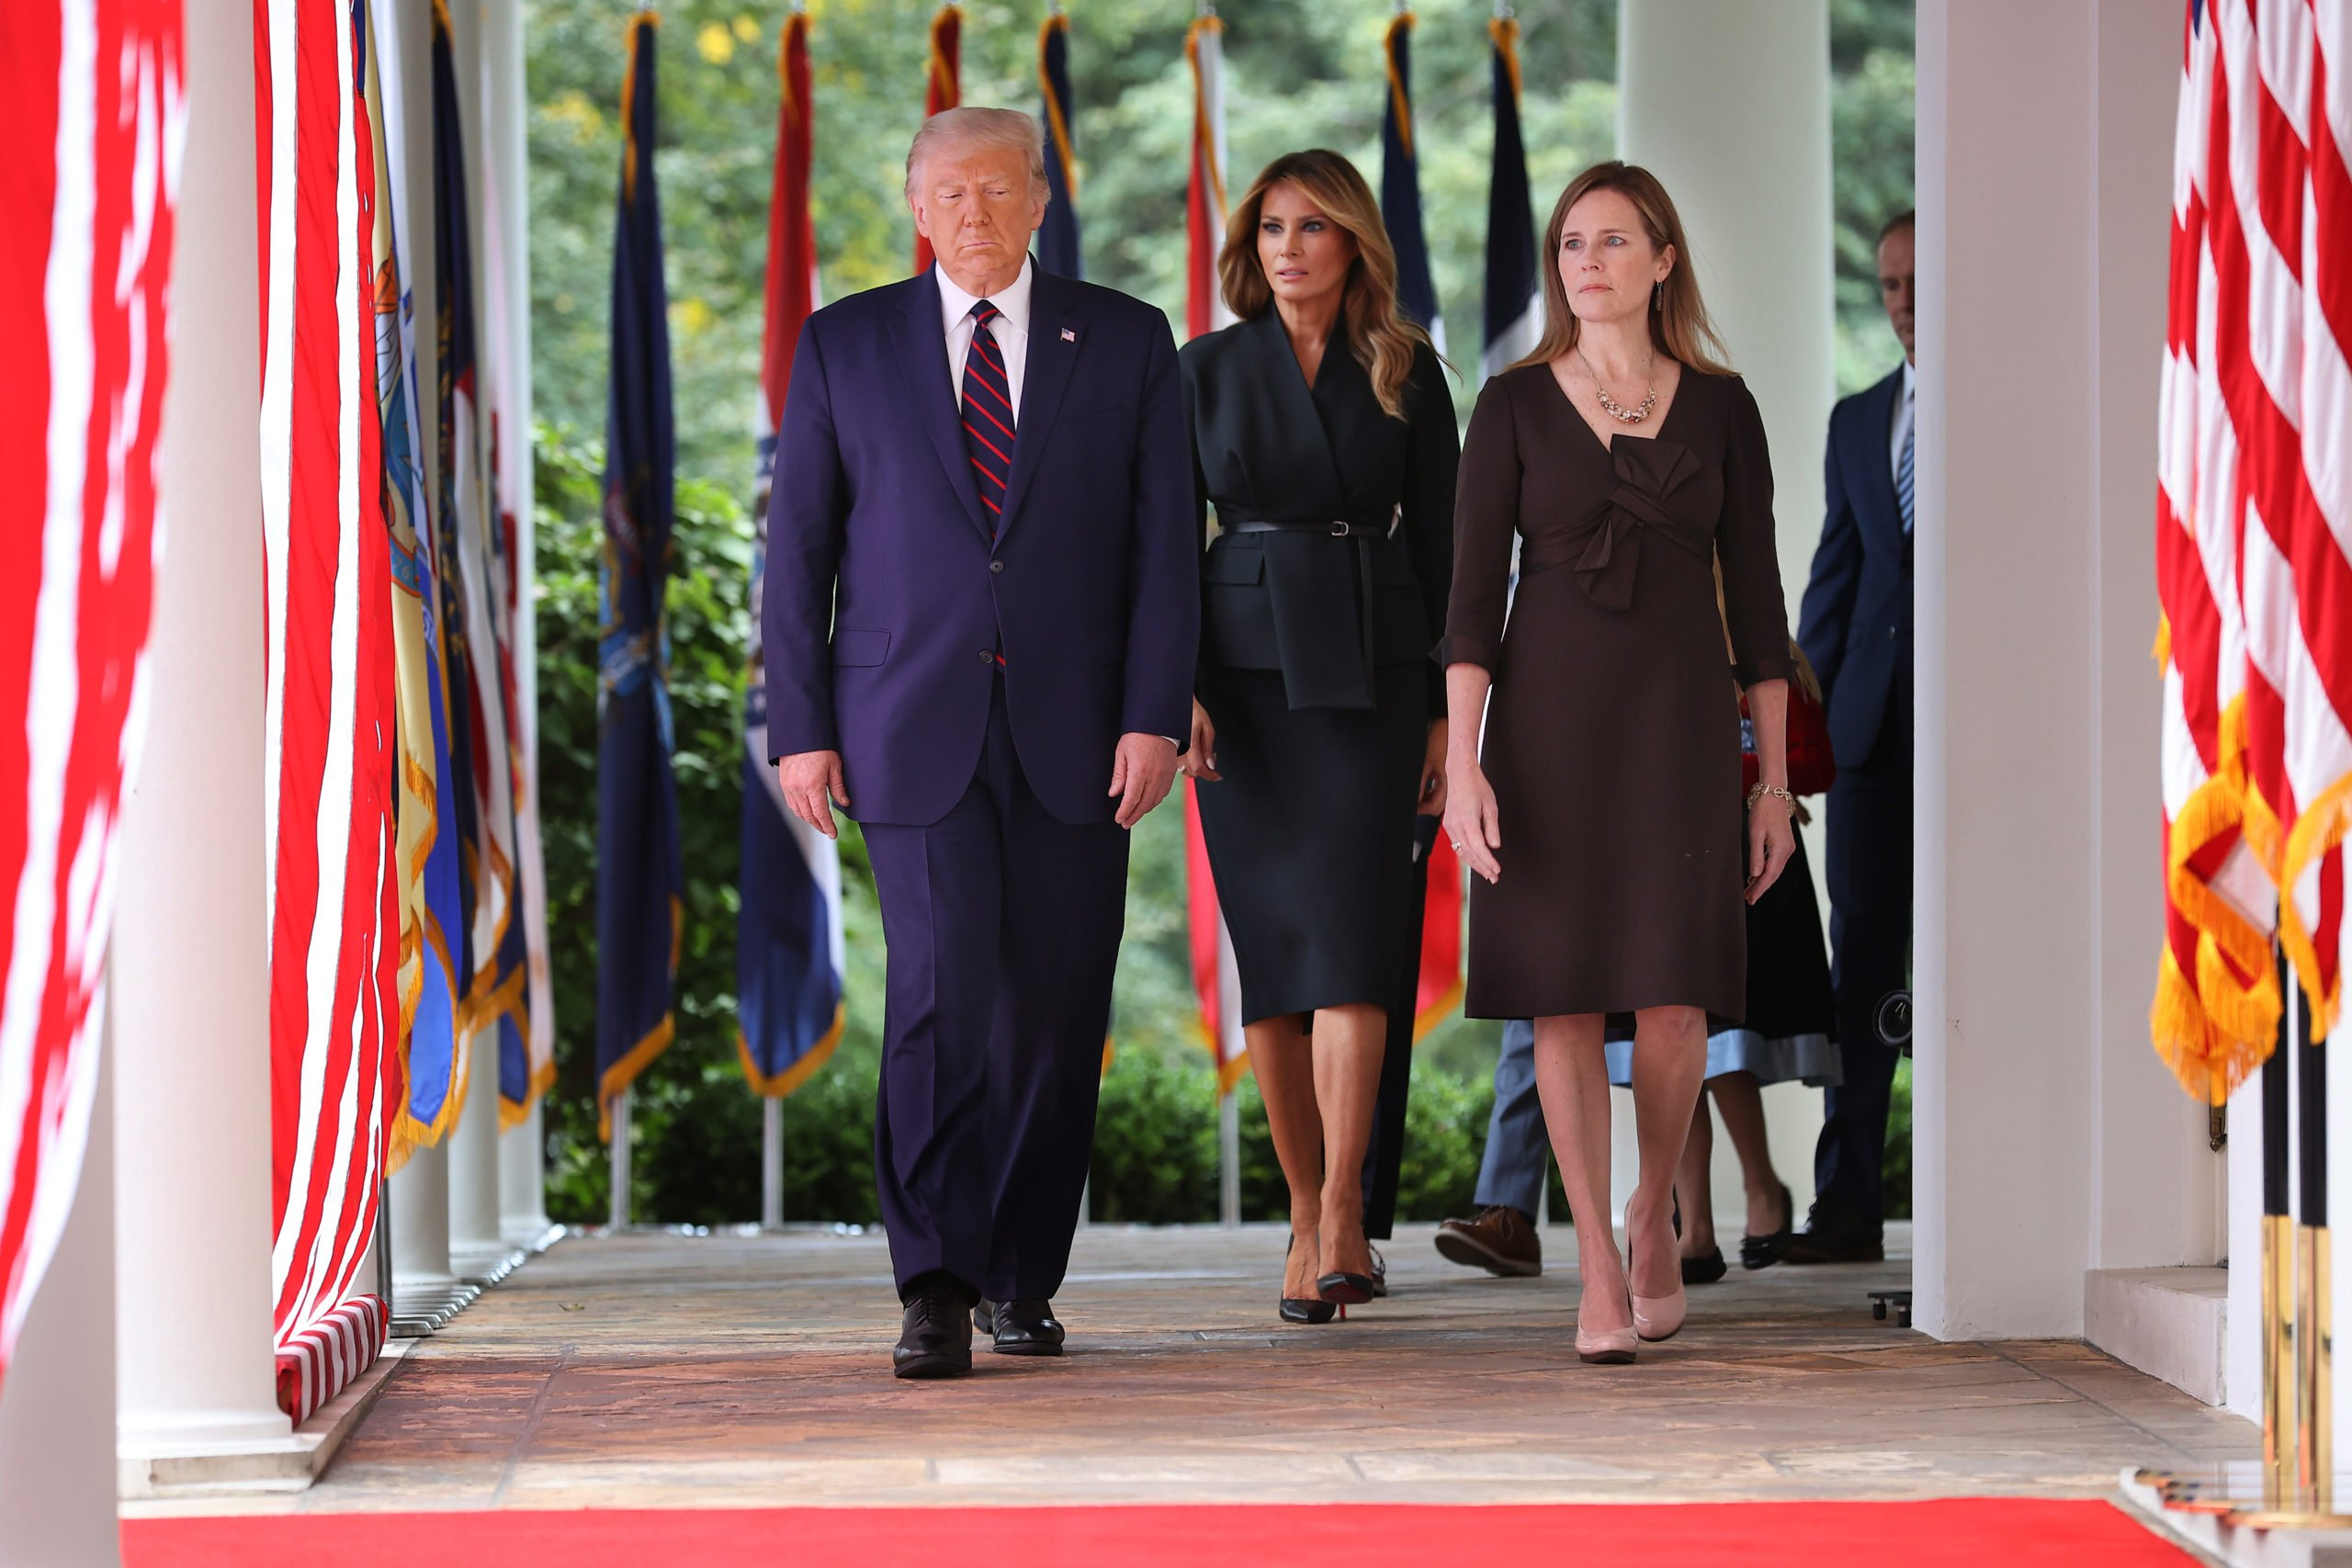 WASHINGTON, DC - SEPTEMBER 26: (L-R) President Donald Trump, first lady Melania Trump and 7th U.S. Circuit Court Judge Amy Coney Barrett, 48, walk into the Rose Garden before Trump announces Barrett as his nominee to the Supreme Court at the White House September 26, 2020 in Washington, DC. With 38 days until the election, Trump tapped Barrett to be his third Supreme Court nominee in just four years and to replace the late Associate Justice Ruth Bader Ginsburg, who will be buried at Arlington National Cemetery on Tuesday. (Photo by Chip Somodevilla/Getty Images)